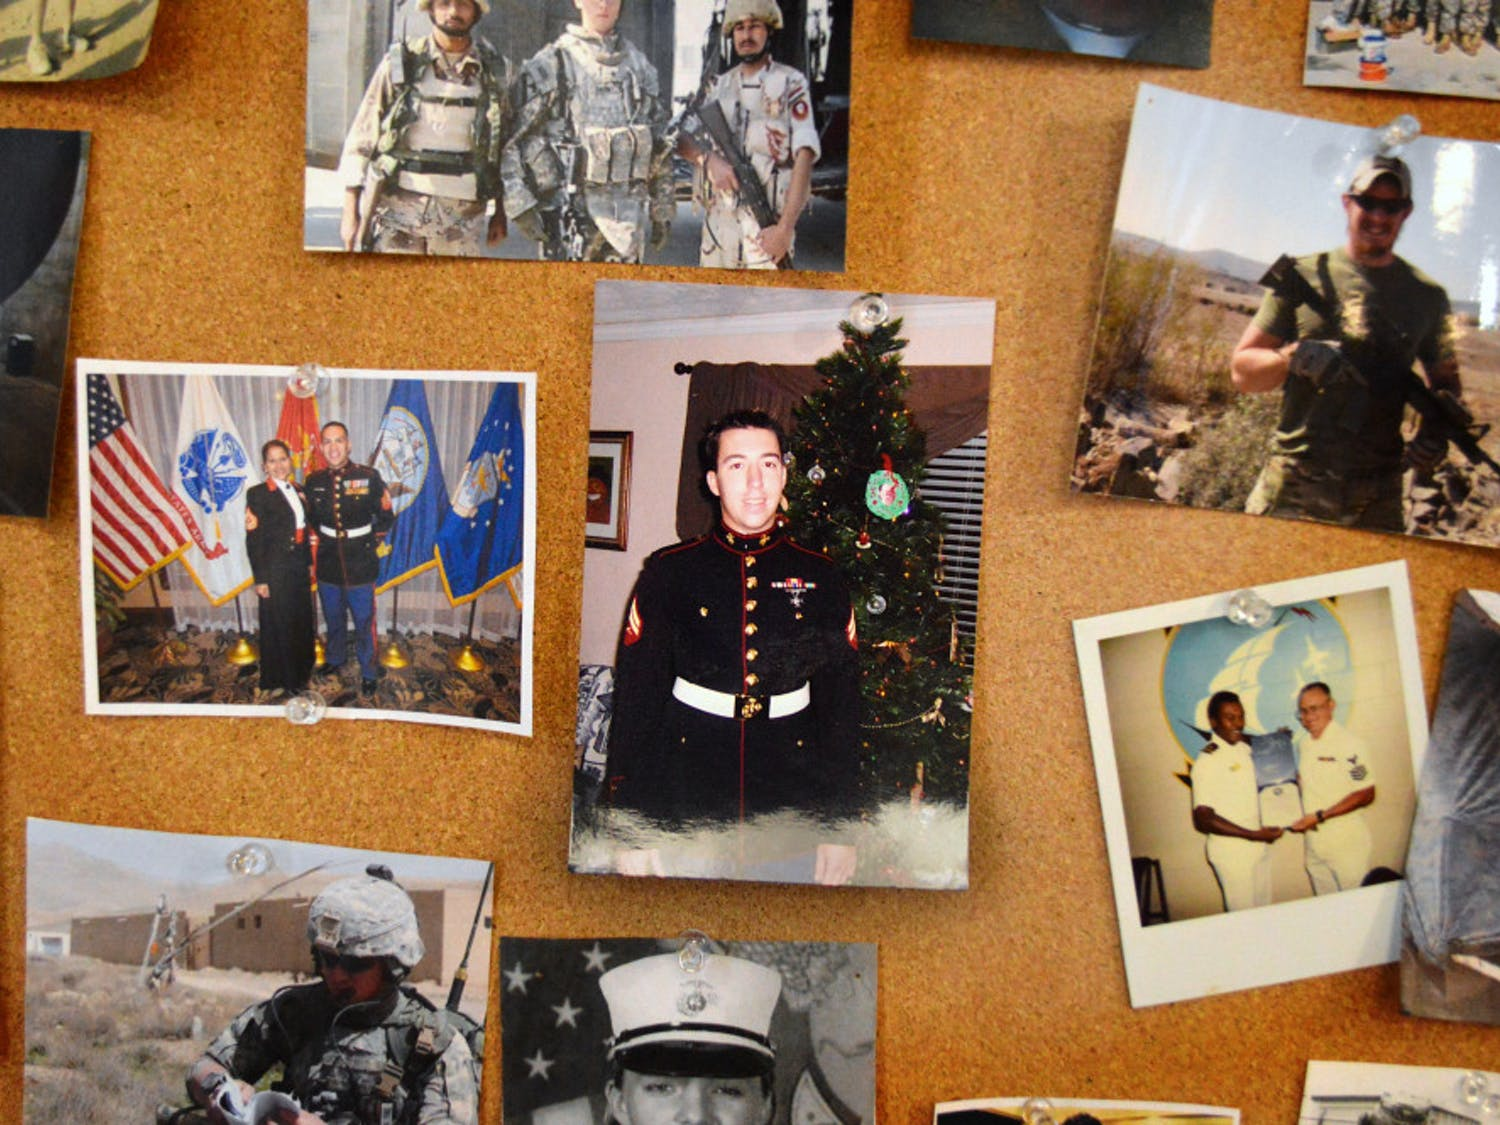 Photographs of members in uniform and in the field are displayed on the walls of the Collegiate Veterans Success Center.